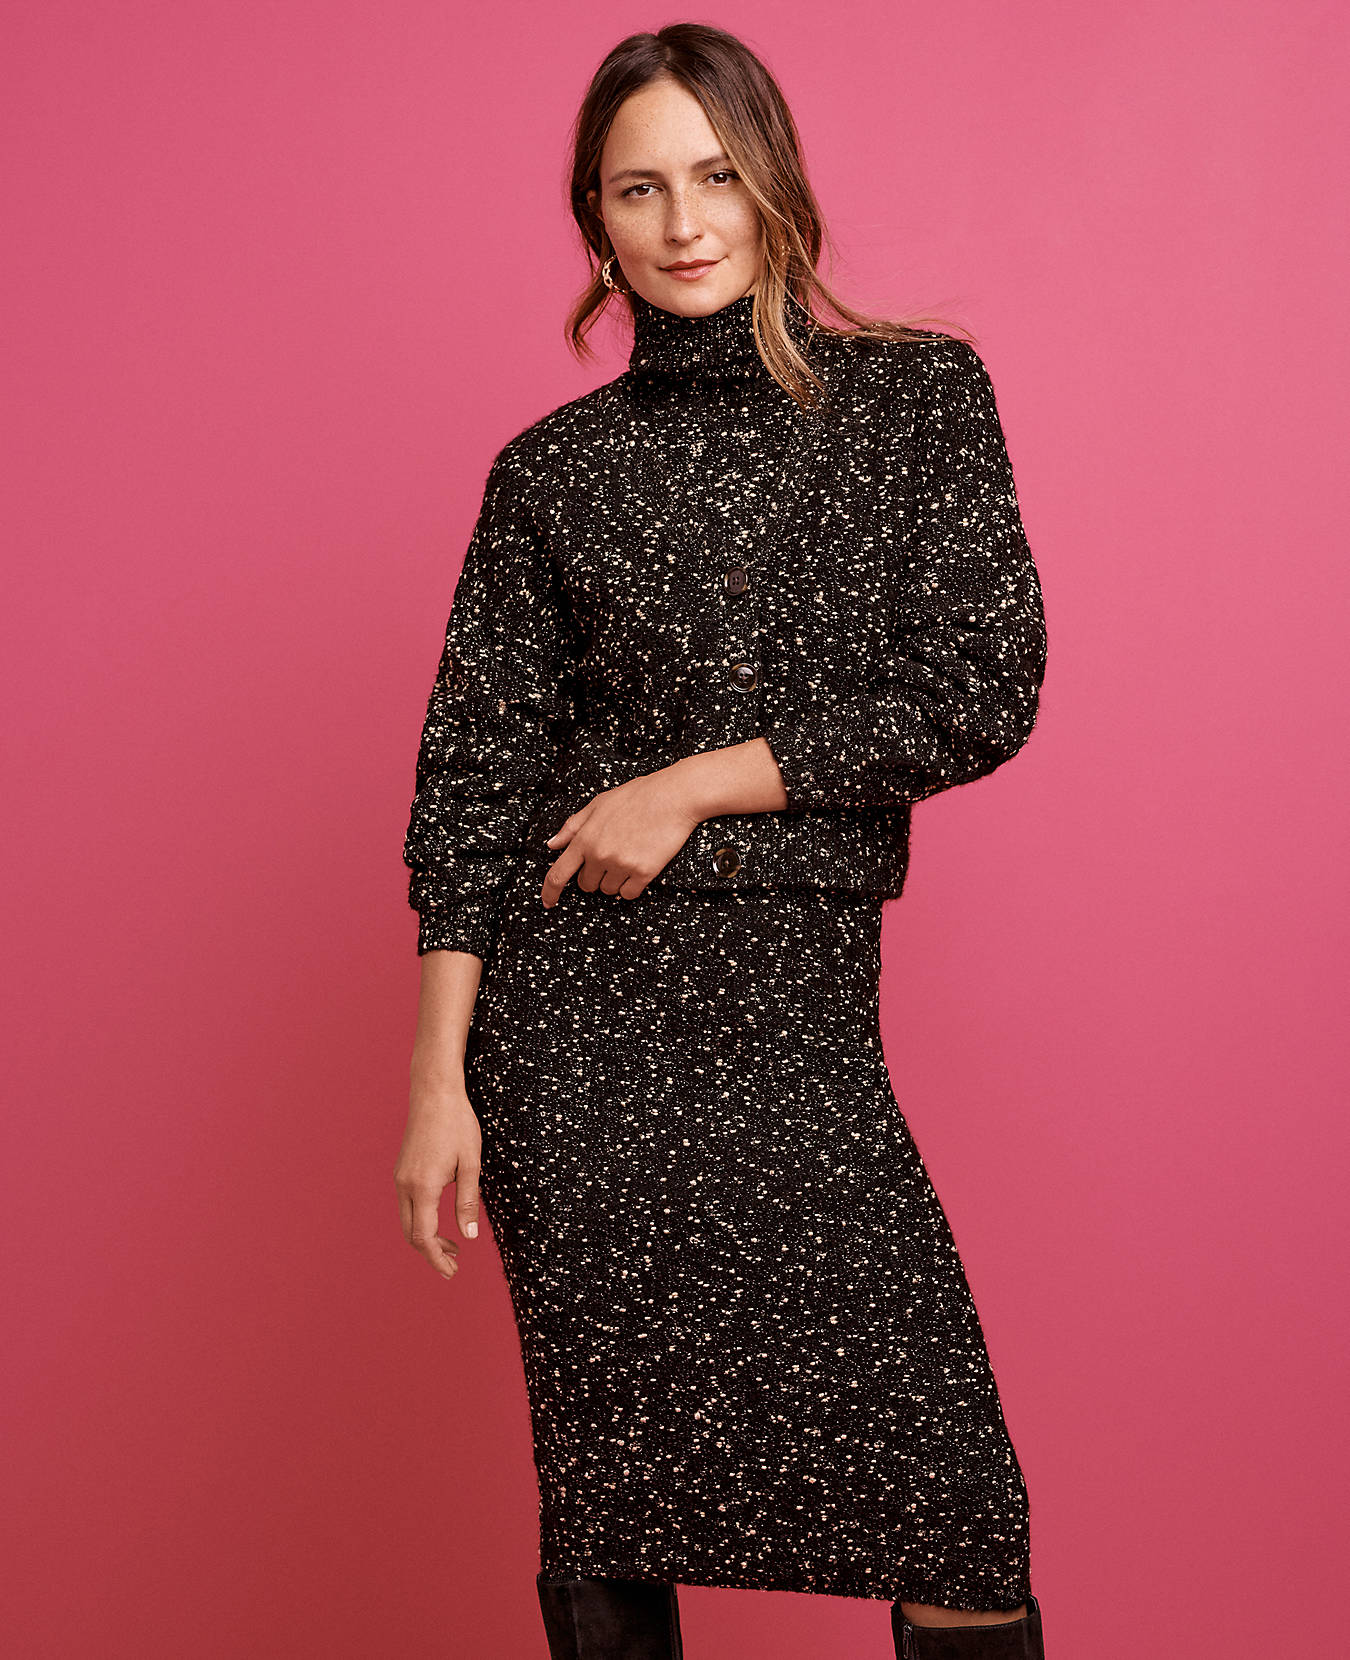 LIMITED TIME ONLY! ANN TAYLOR CLEARANCE UP TO 80% OFF!